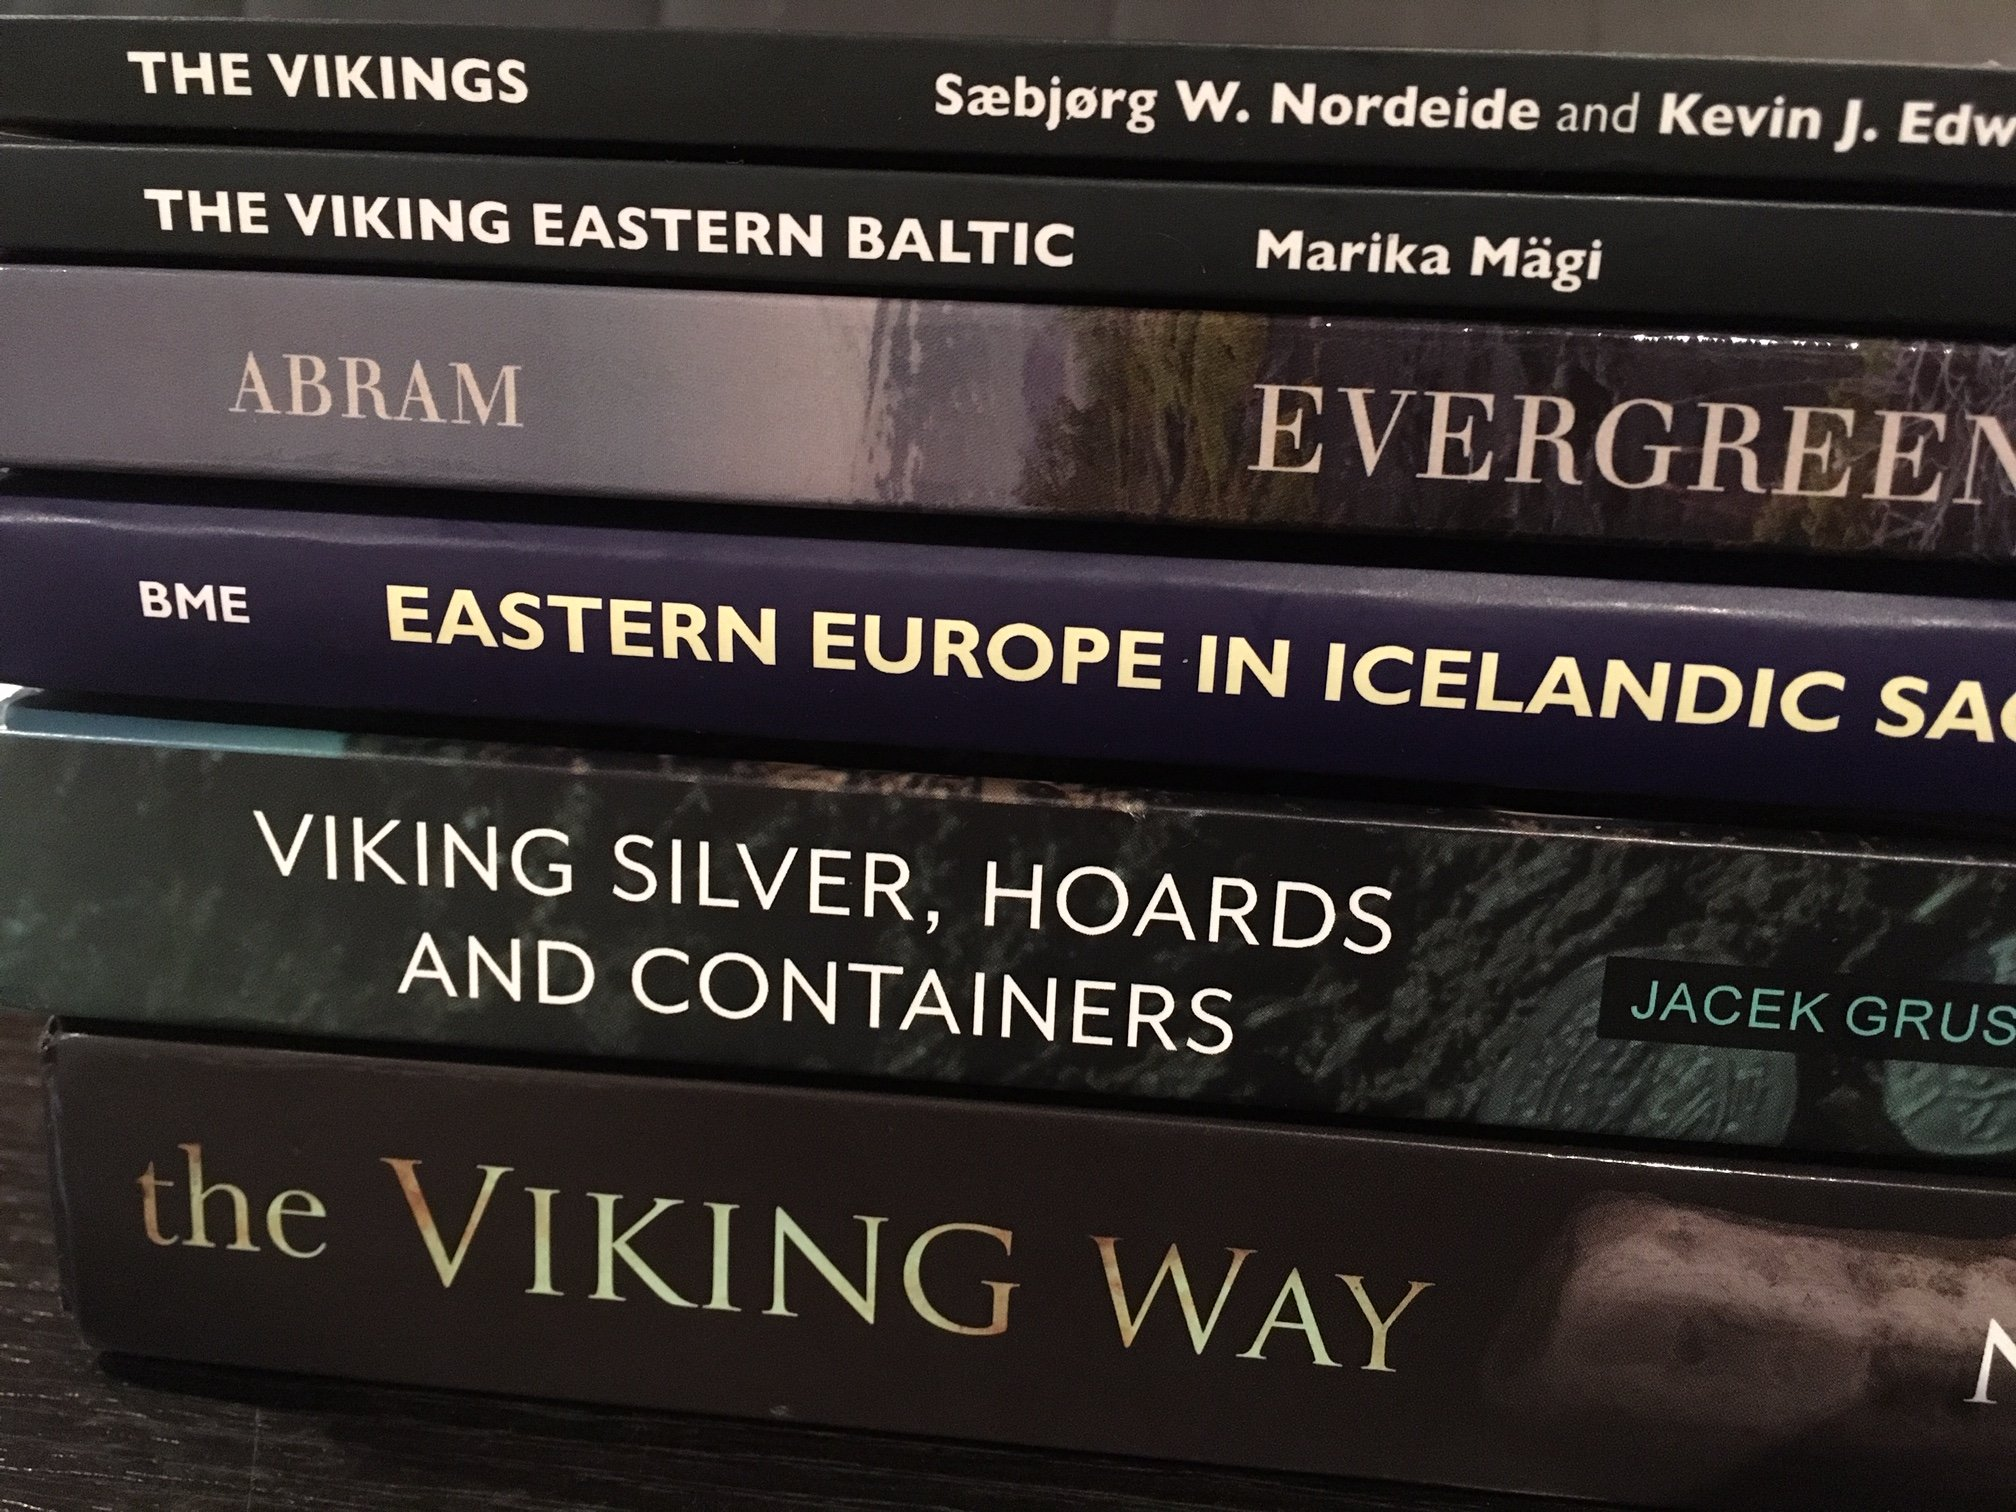 New Medieval Books: Vikings and the Norse World